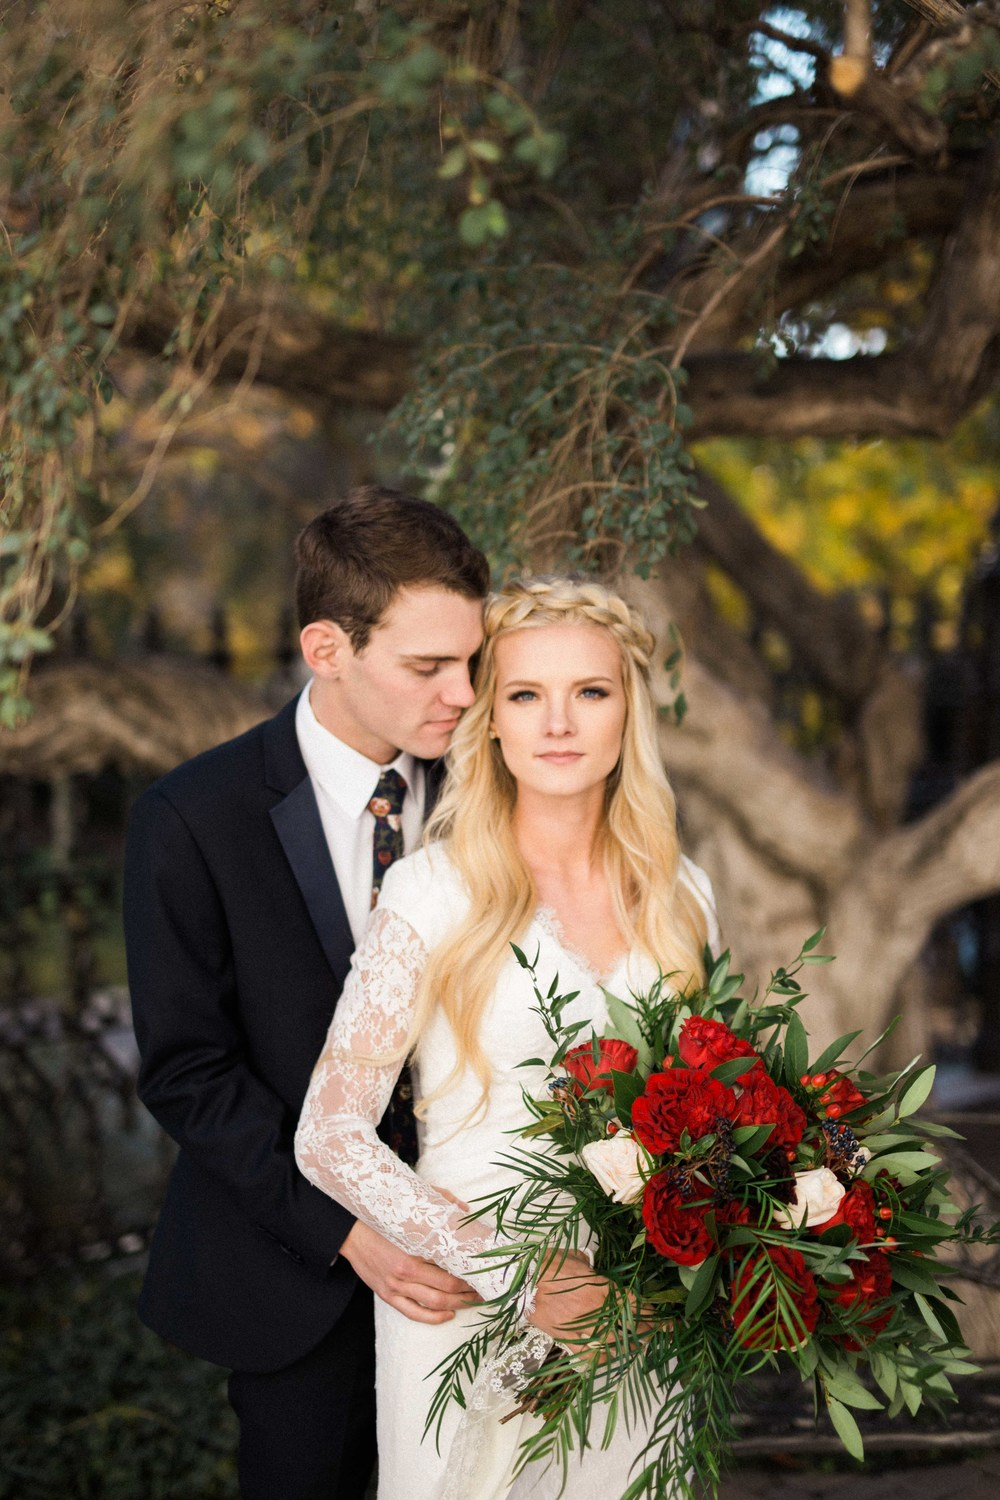 Salt-Lake-City-Wedding-Photographer-17.jpg